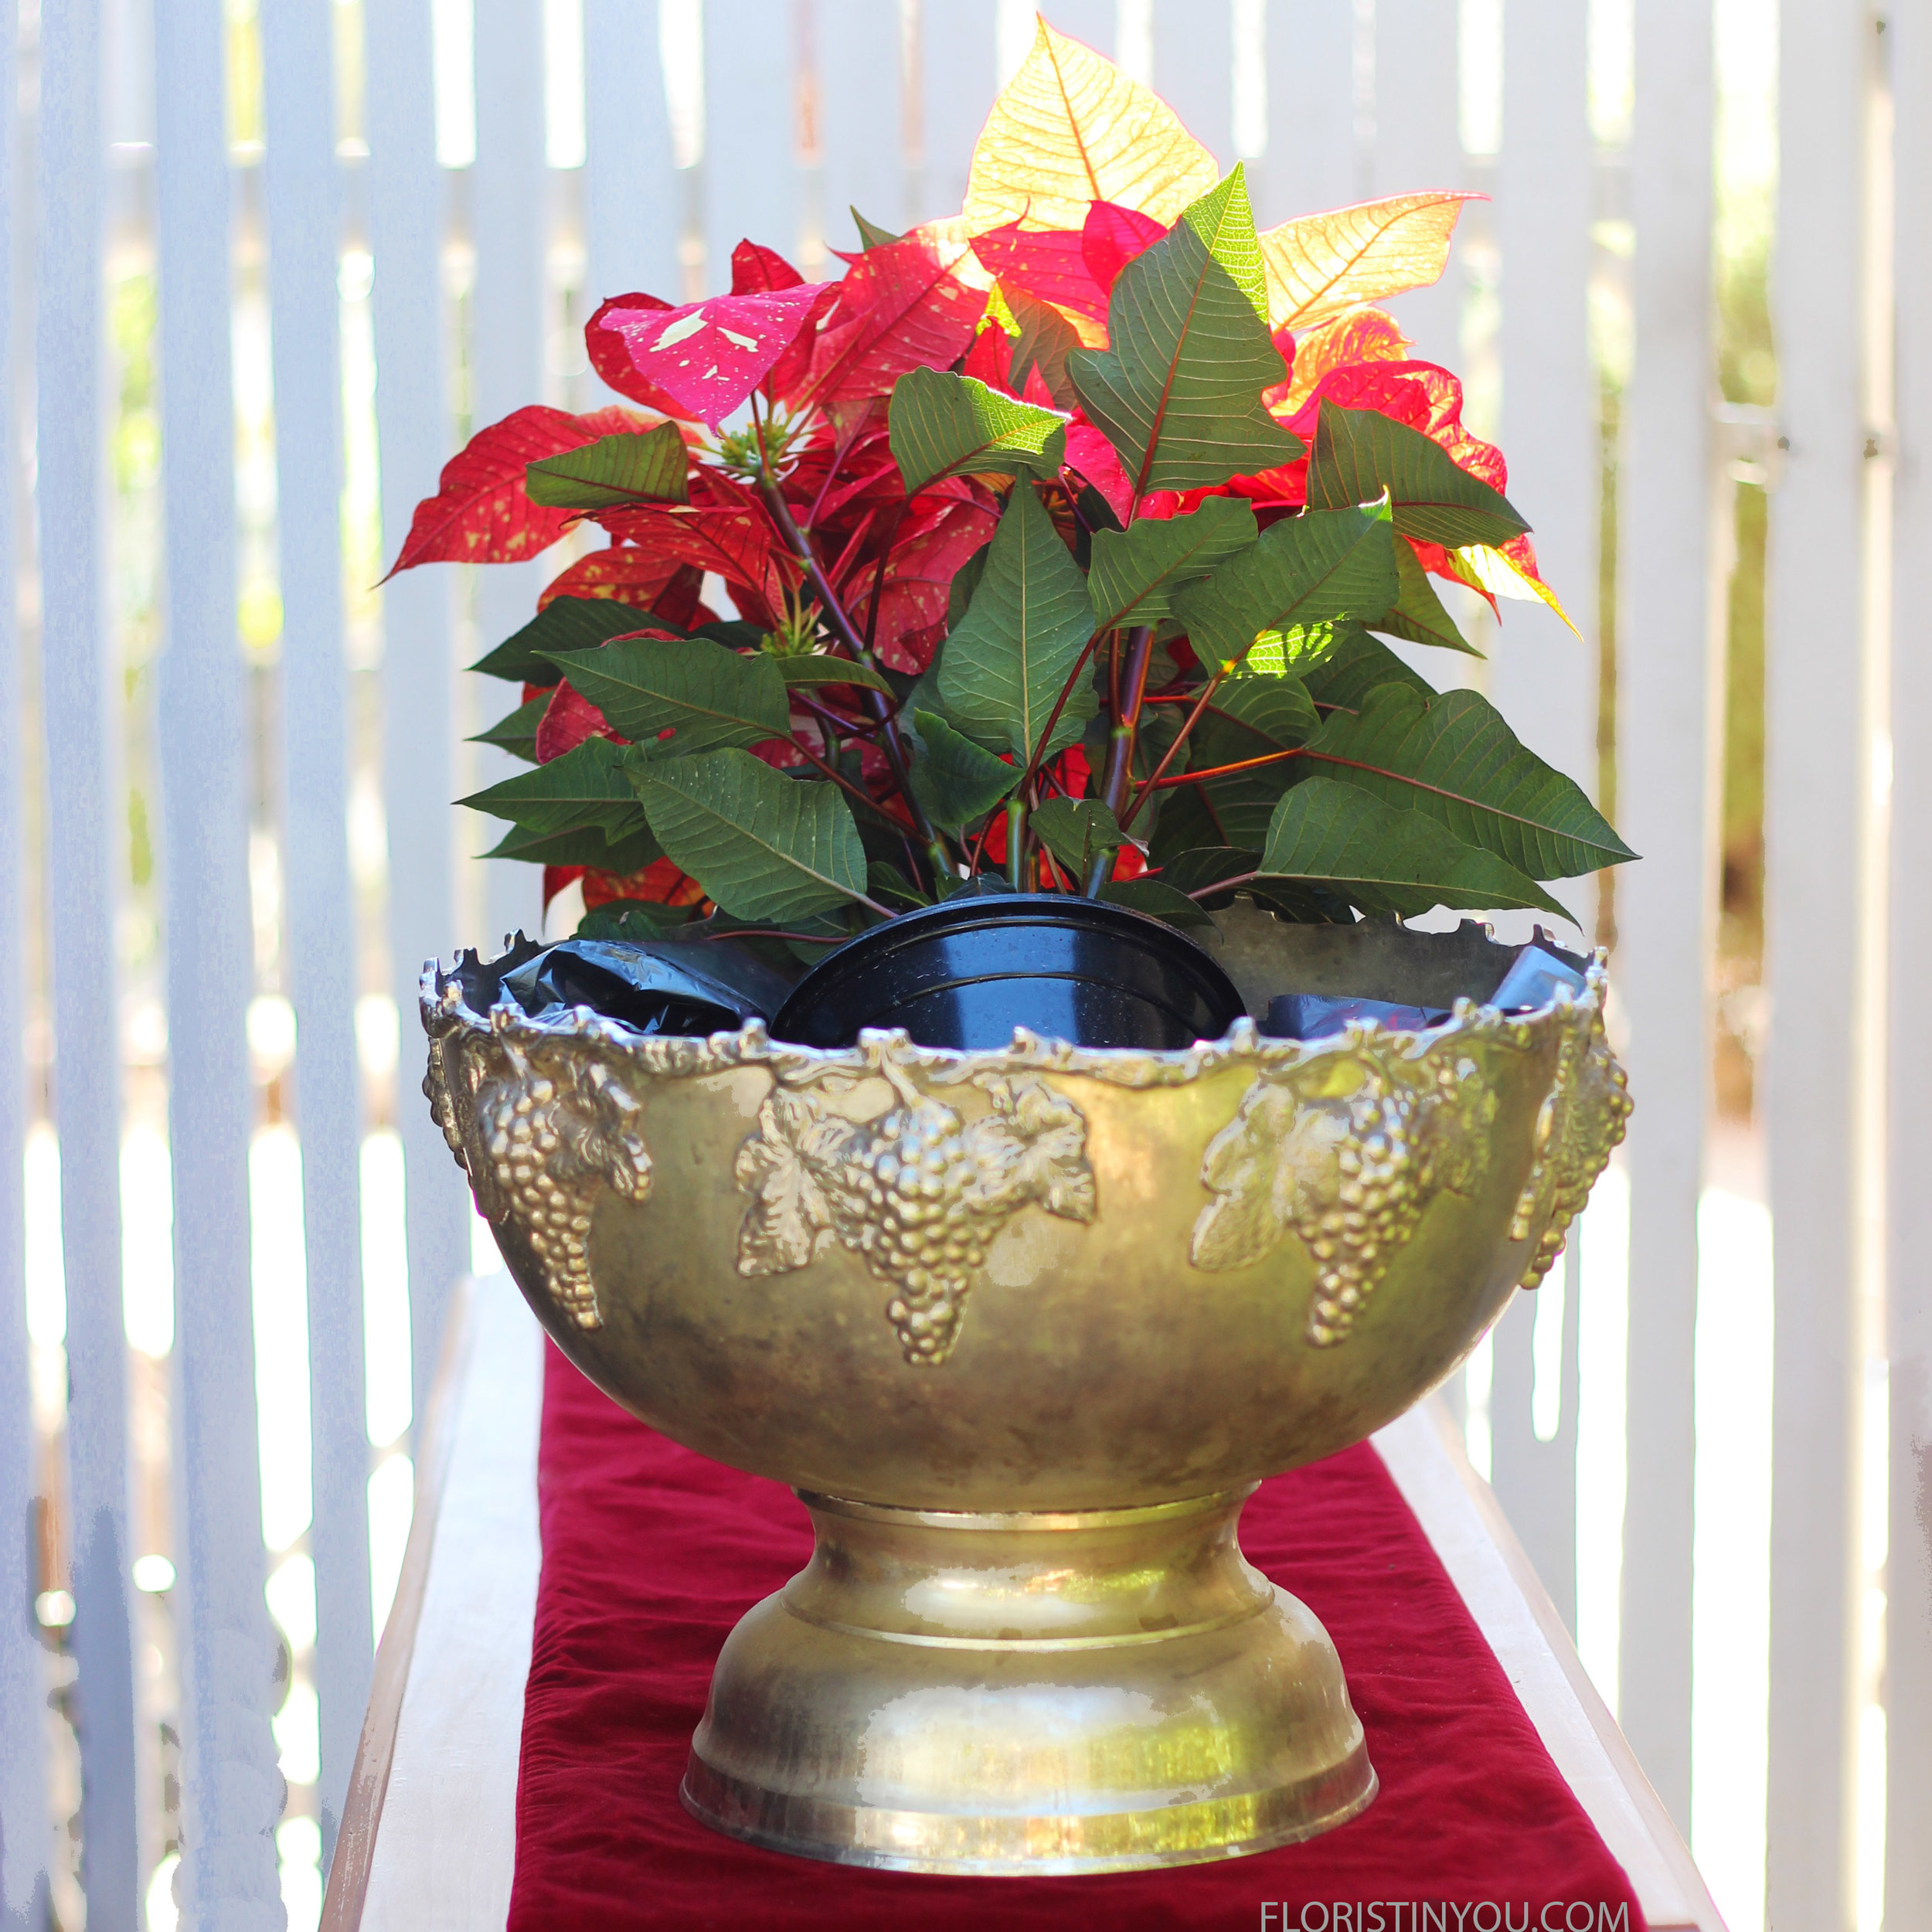 Lay spotted poinsettia in. Splay it outward.